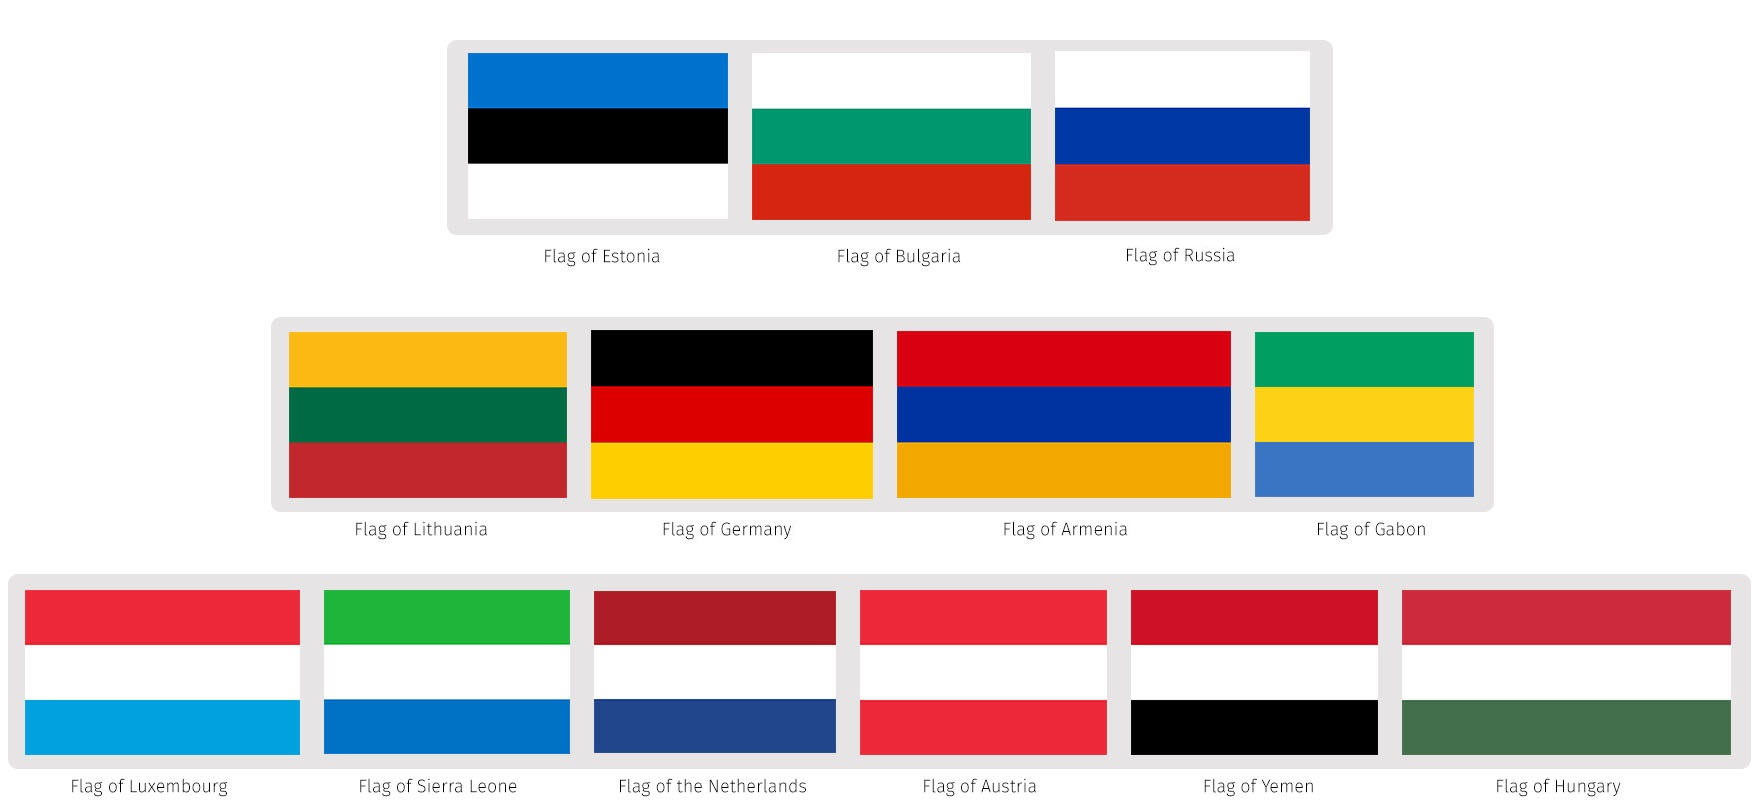 en46-flags-of-the-world_16